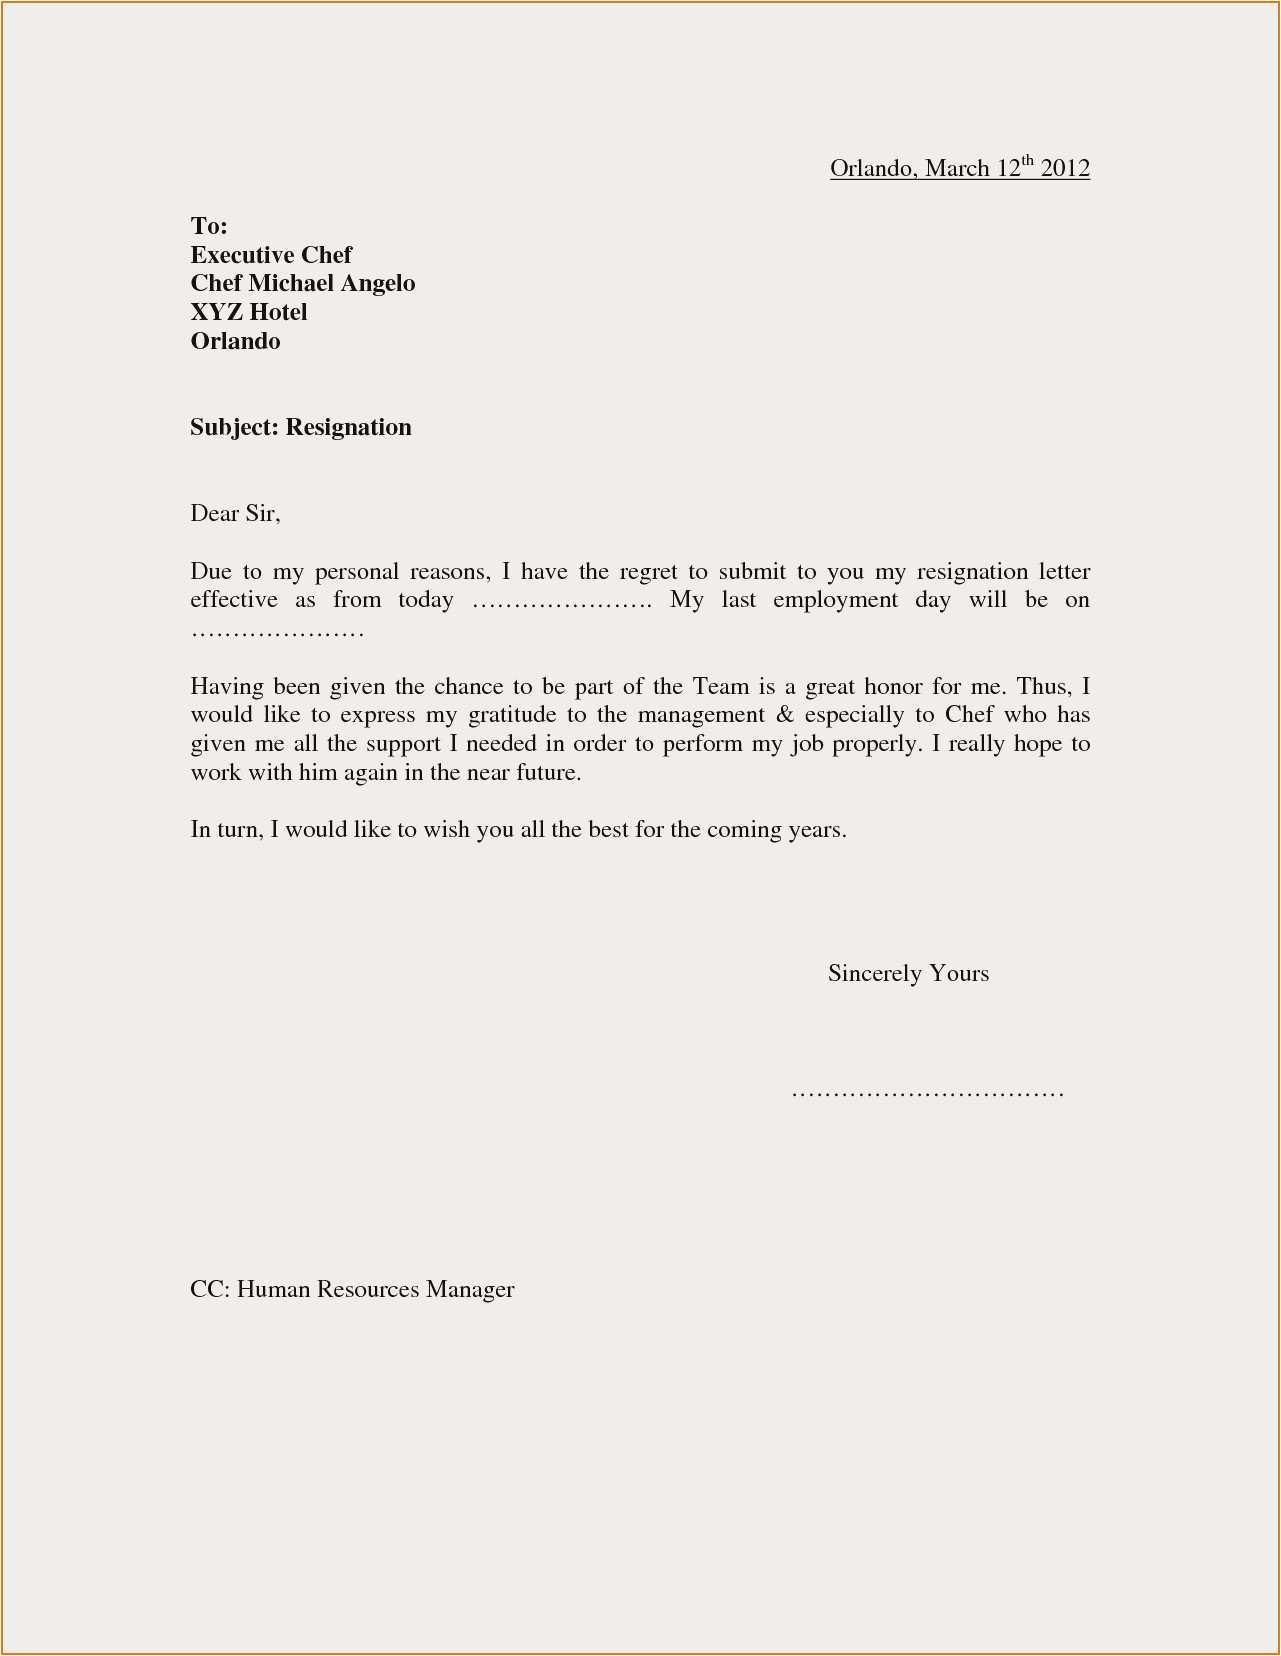 Resignation Letter After Short Employment from mthomearts.com